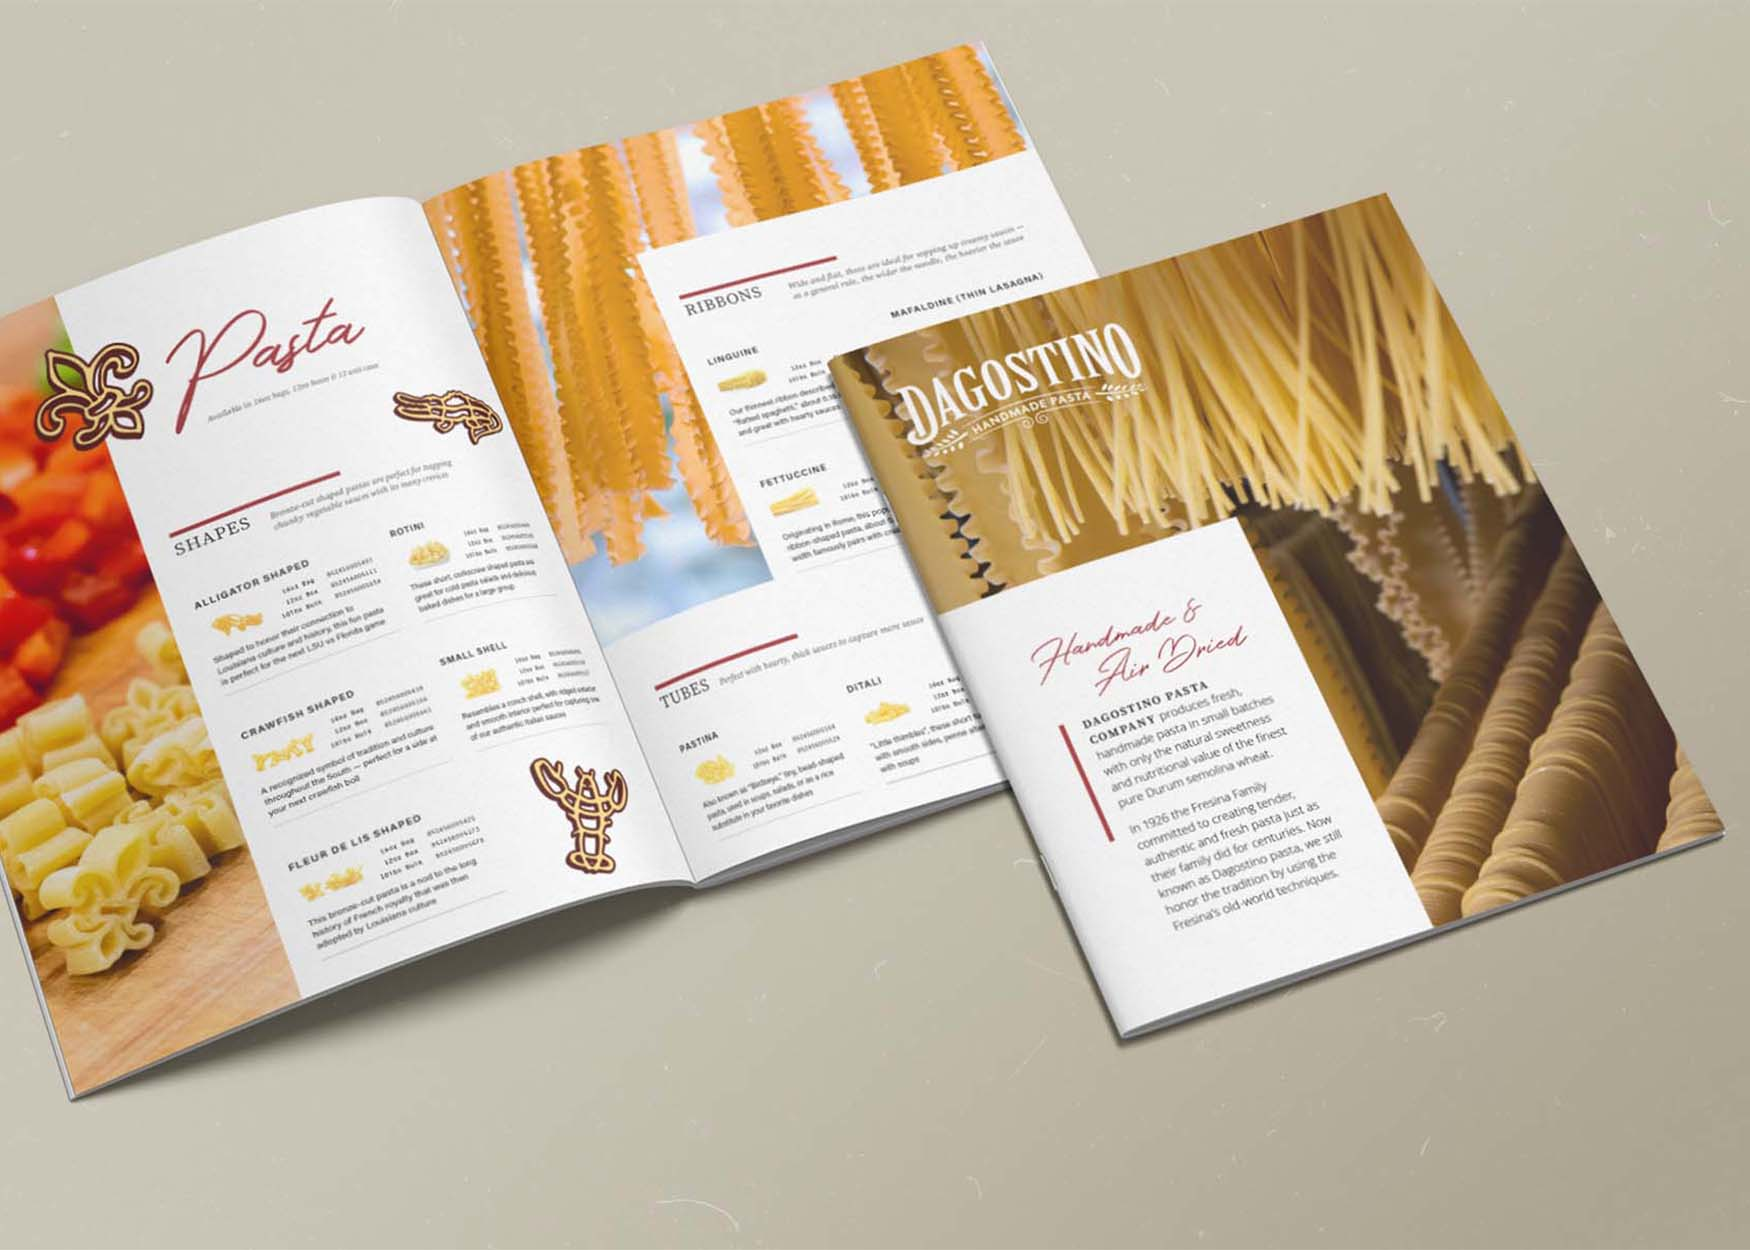 A mockup catalogue for Dagostino Pasta showcases different pasta shapes